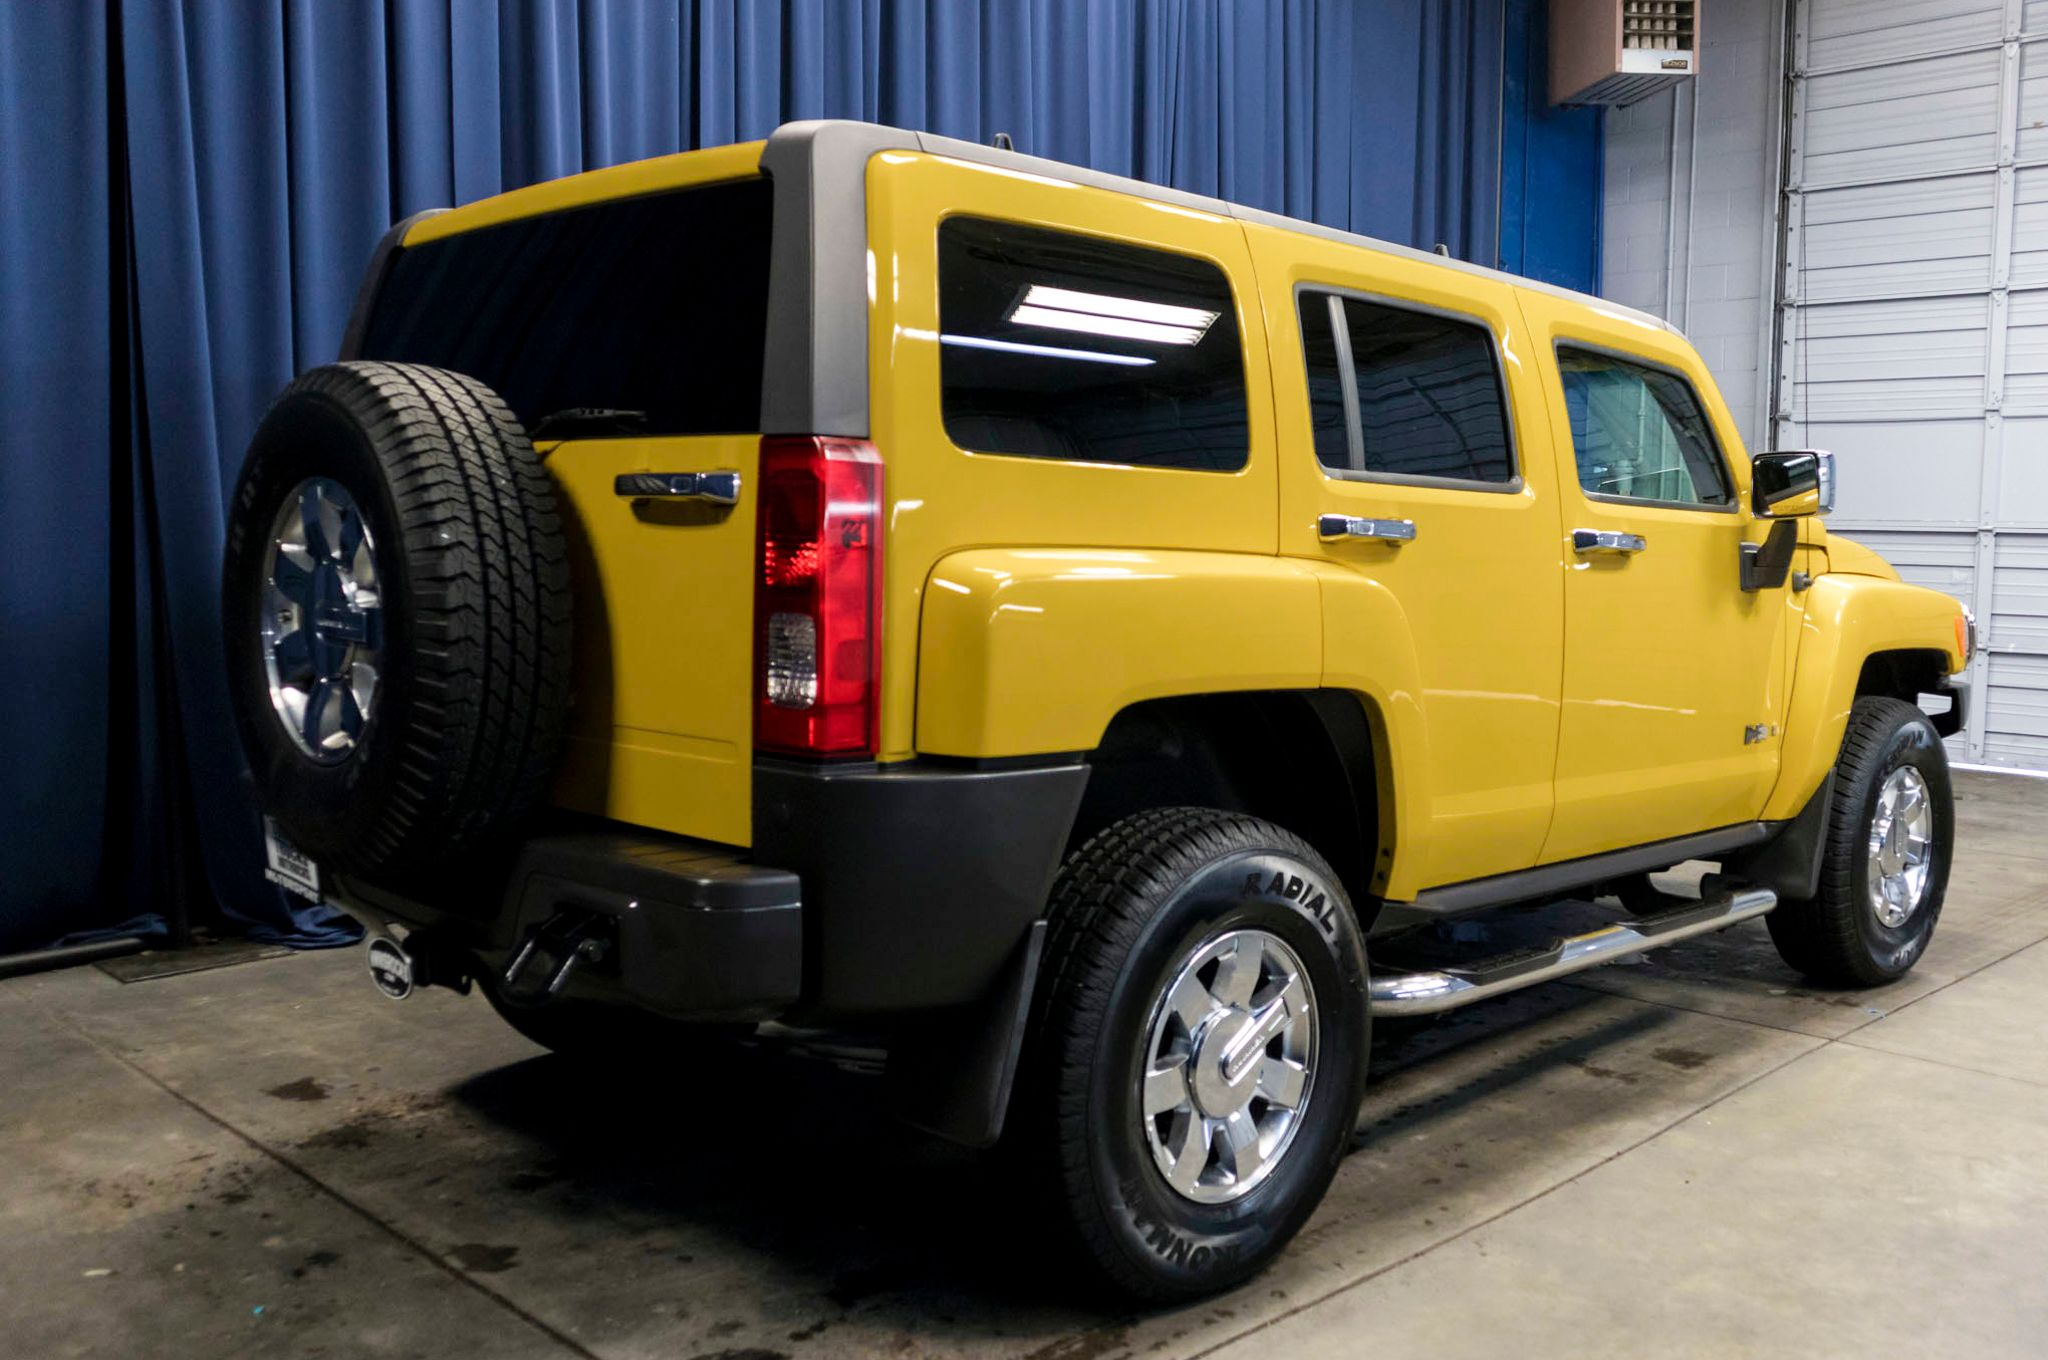 2006 Hummer H3 4x4 Northwest Motorsport